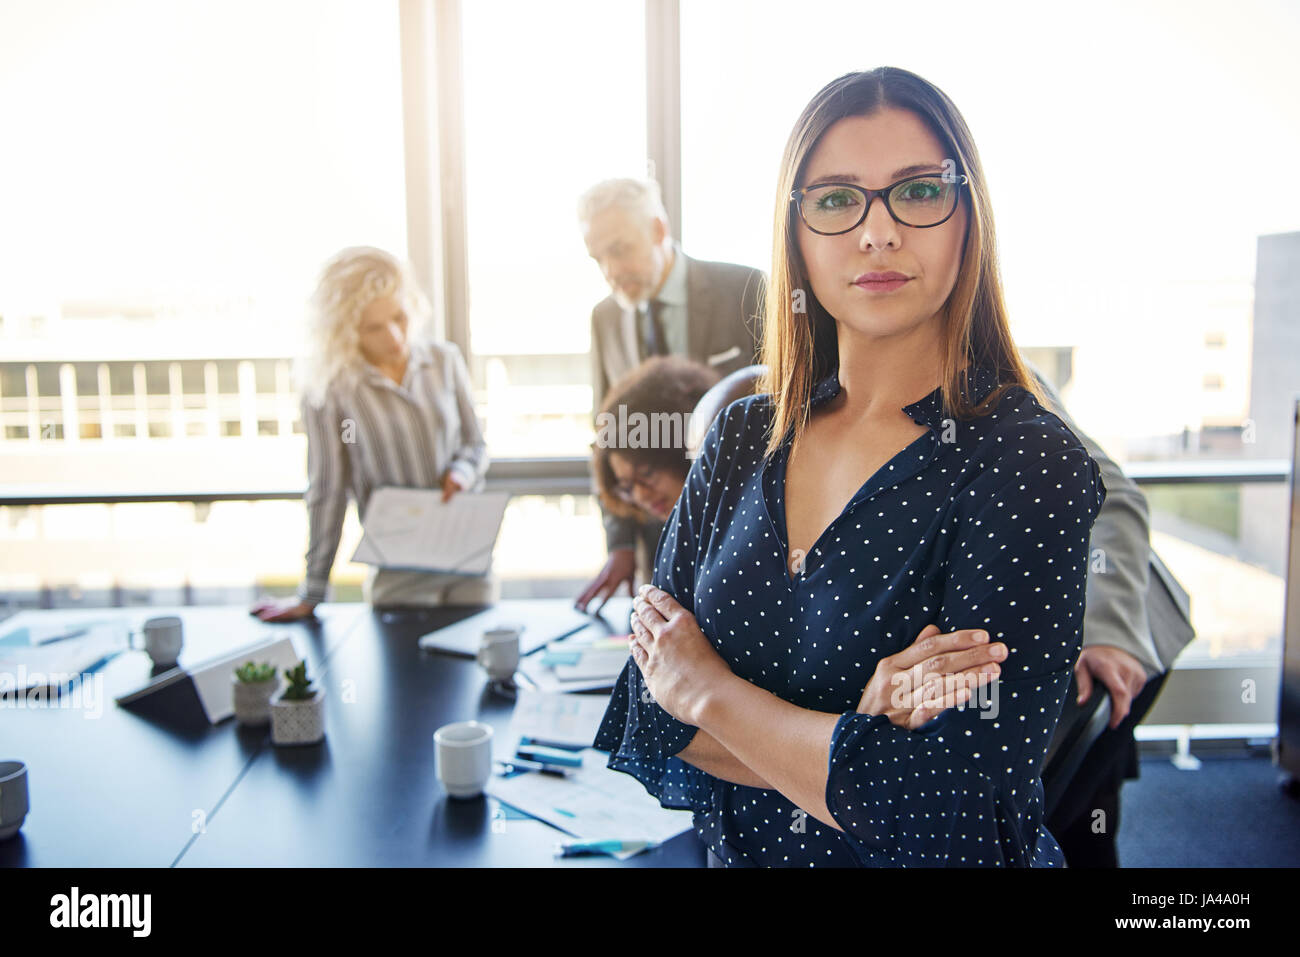 Serious business woman in front of team, looking at camera - Stock Image